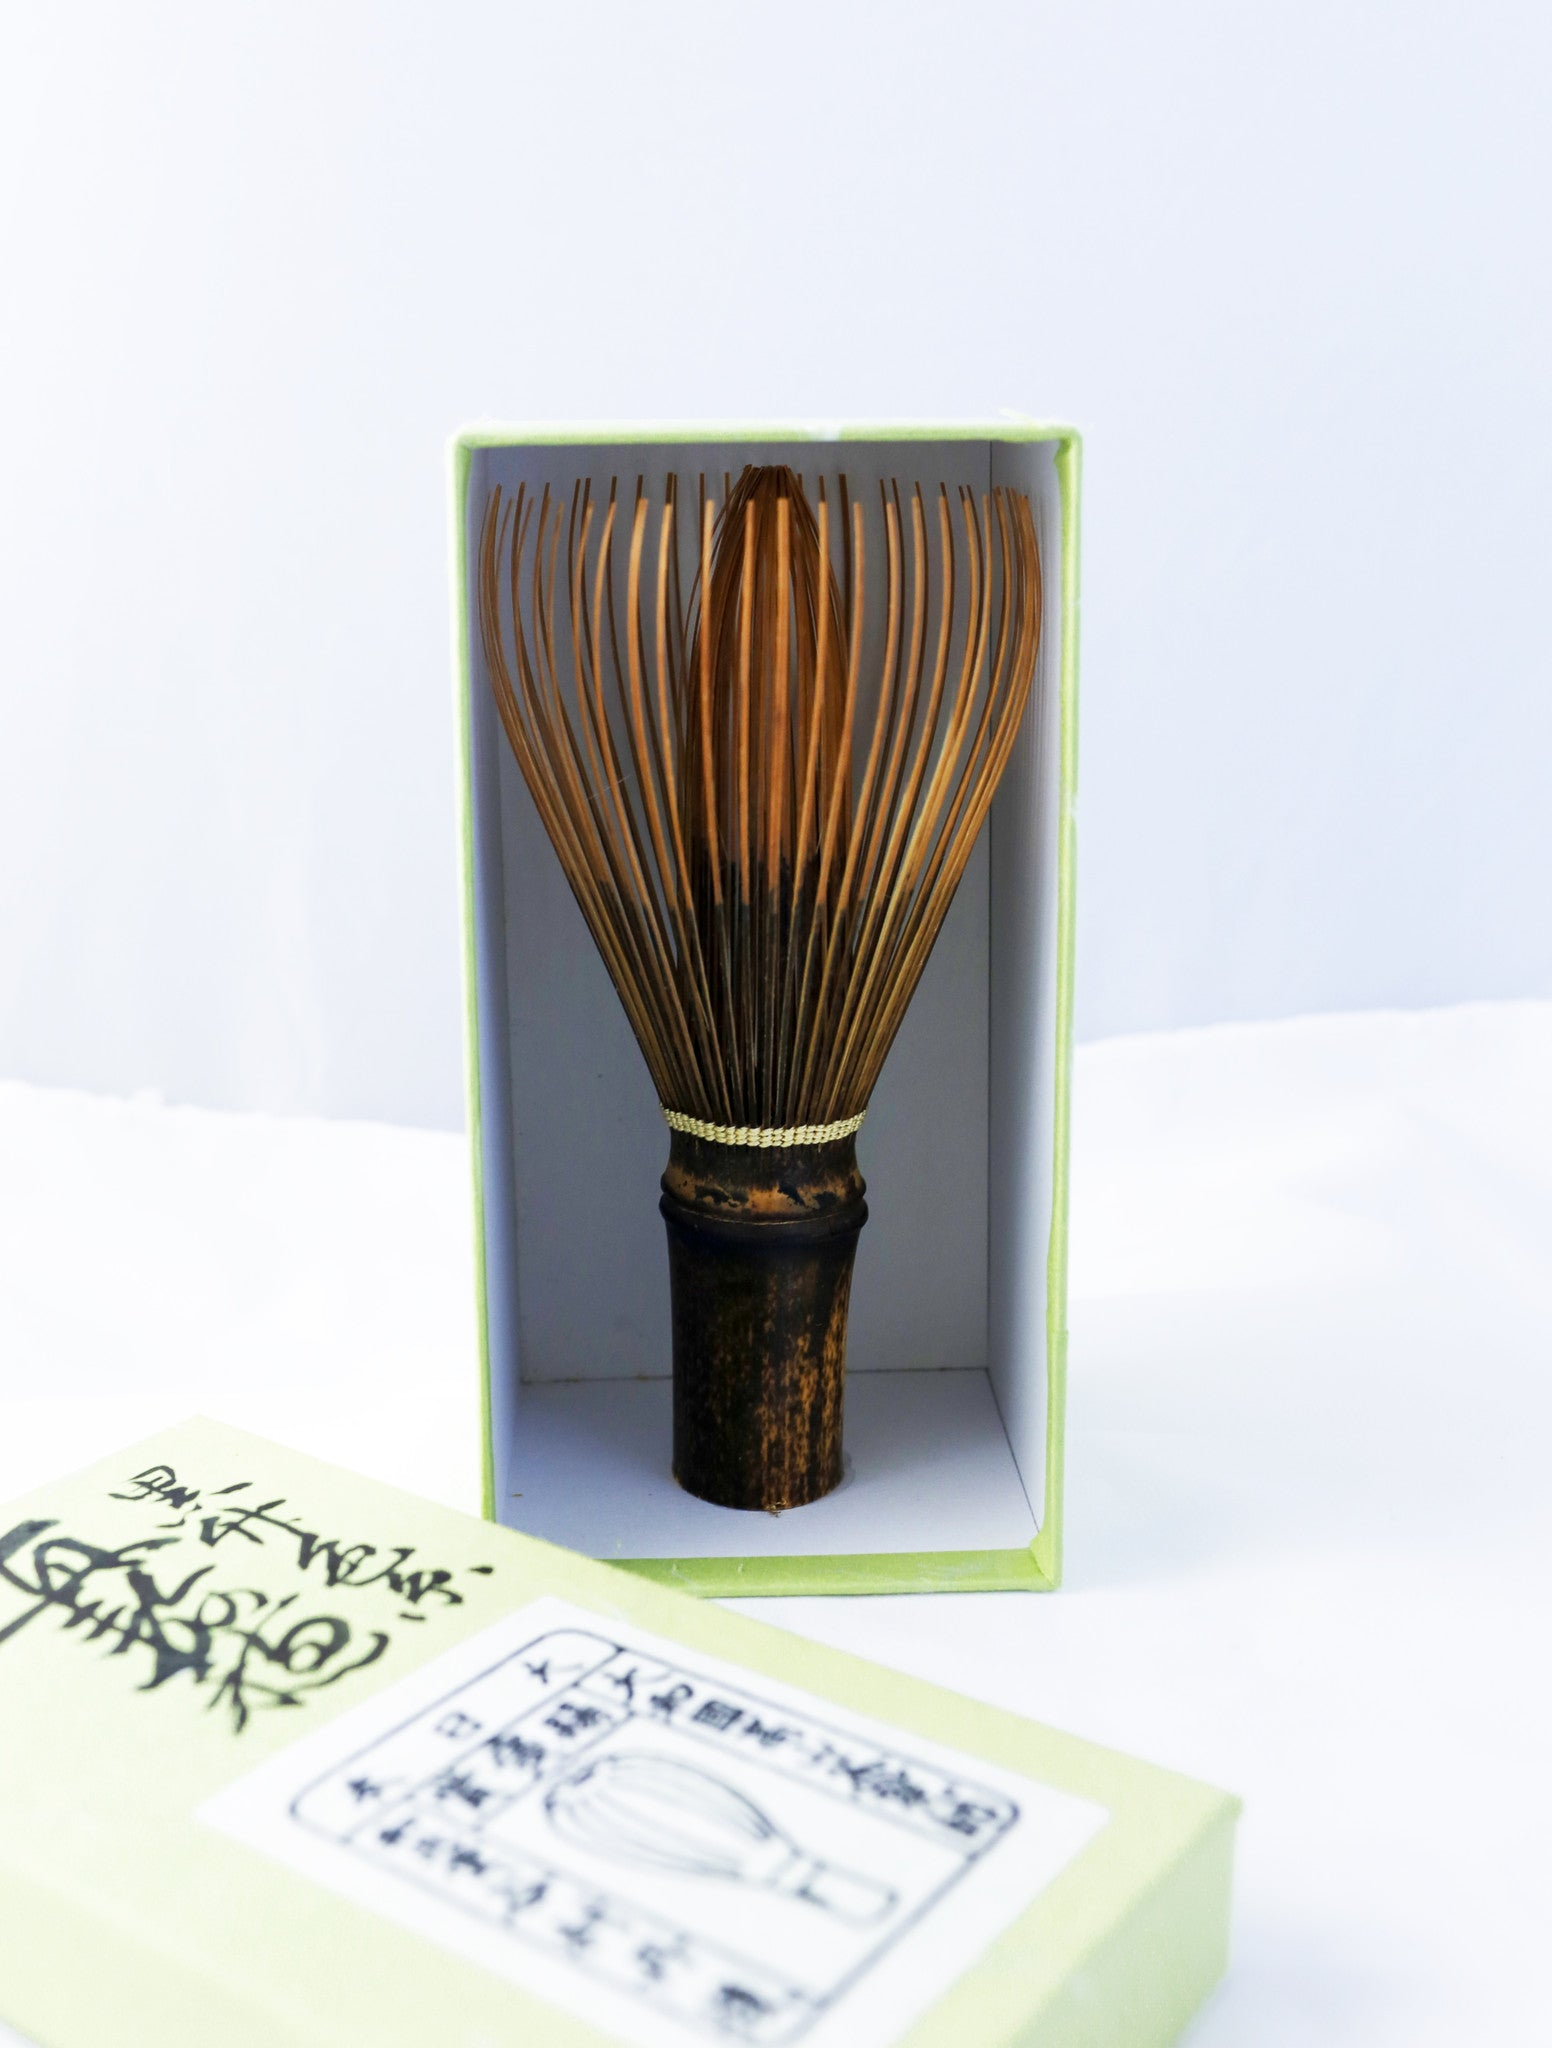 Chasen - Traditional Black Bamboo Matcha Whisk